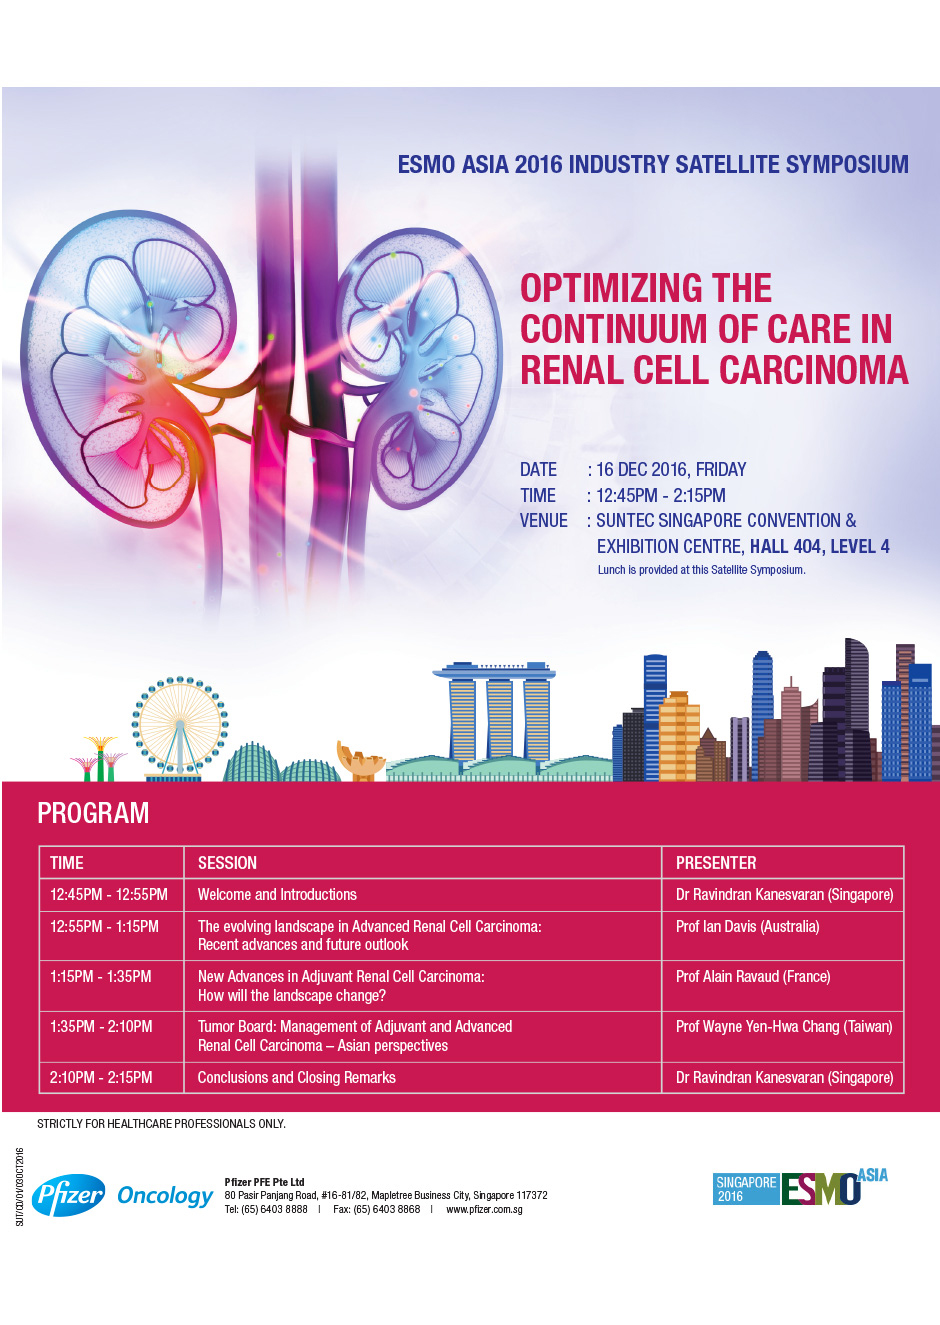 Optimizing the Continuum of Care in Renal Cell Carcinoma